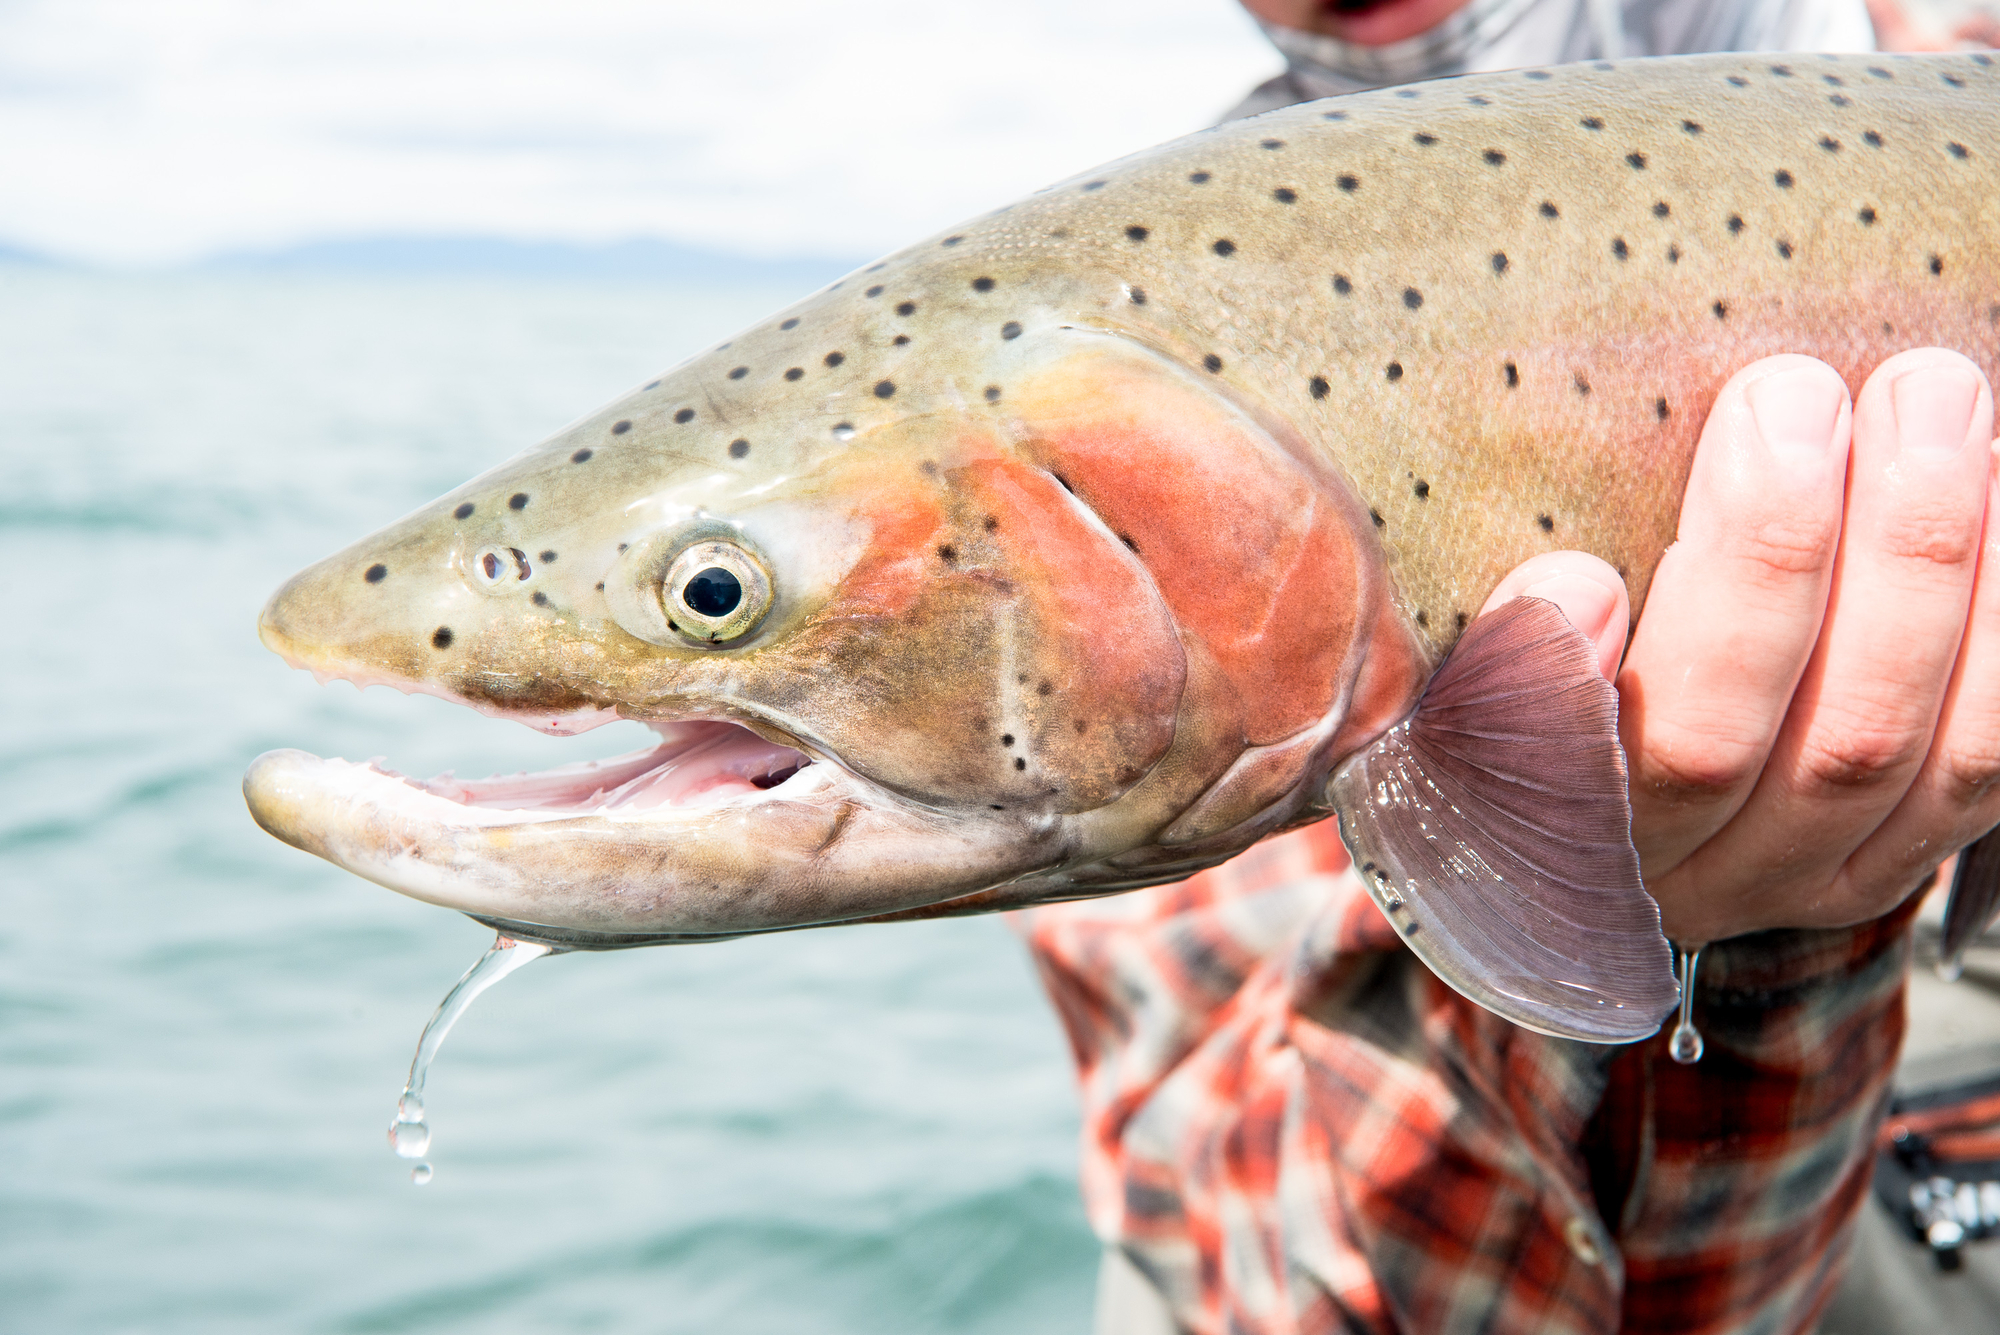 (2/2) The Lahontan Cutthroat are a fine looking species, and pose well for the camera. When fishing sinking lines, it's important to keep the flies close to the bottom. A weighted front fly can help get your leader down when using foam bugs.